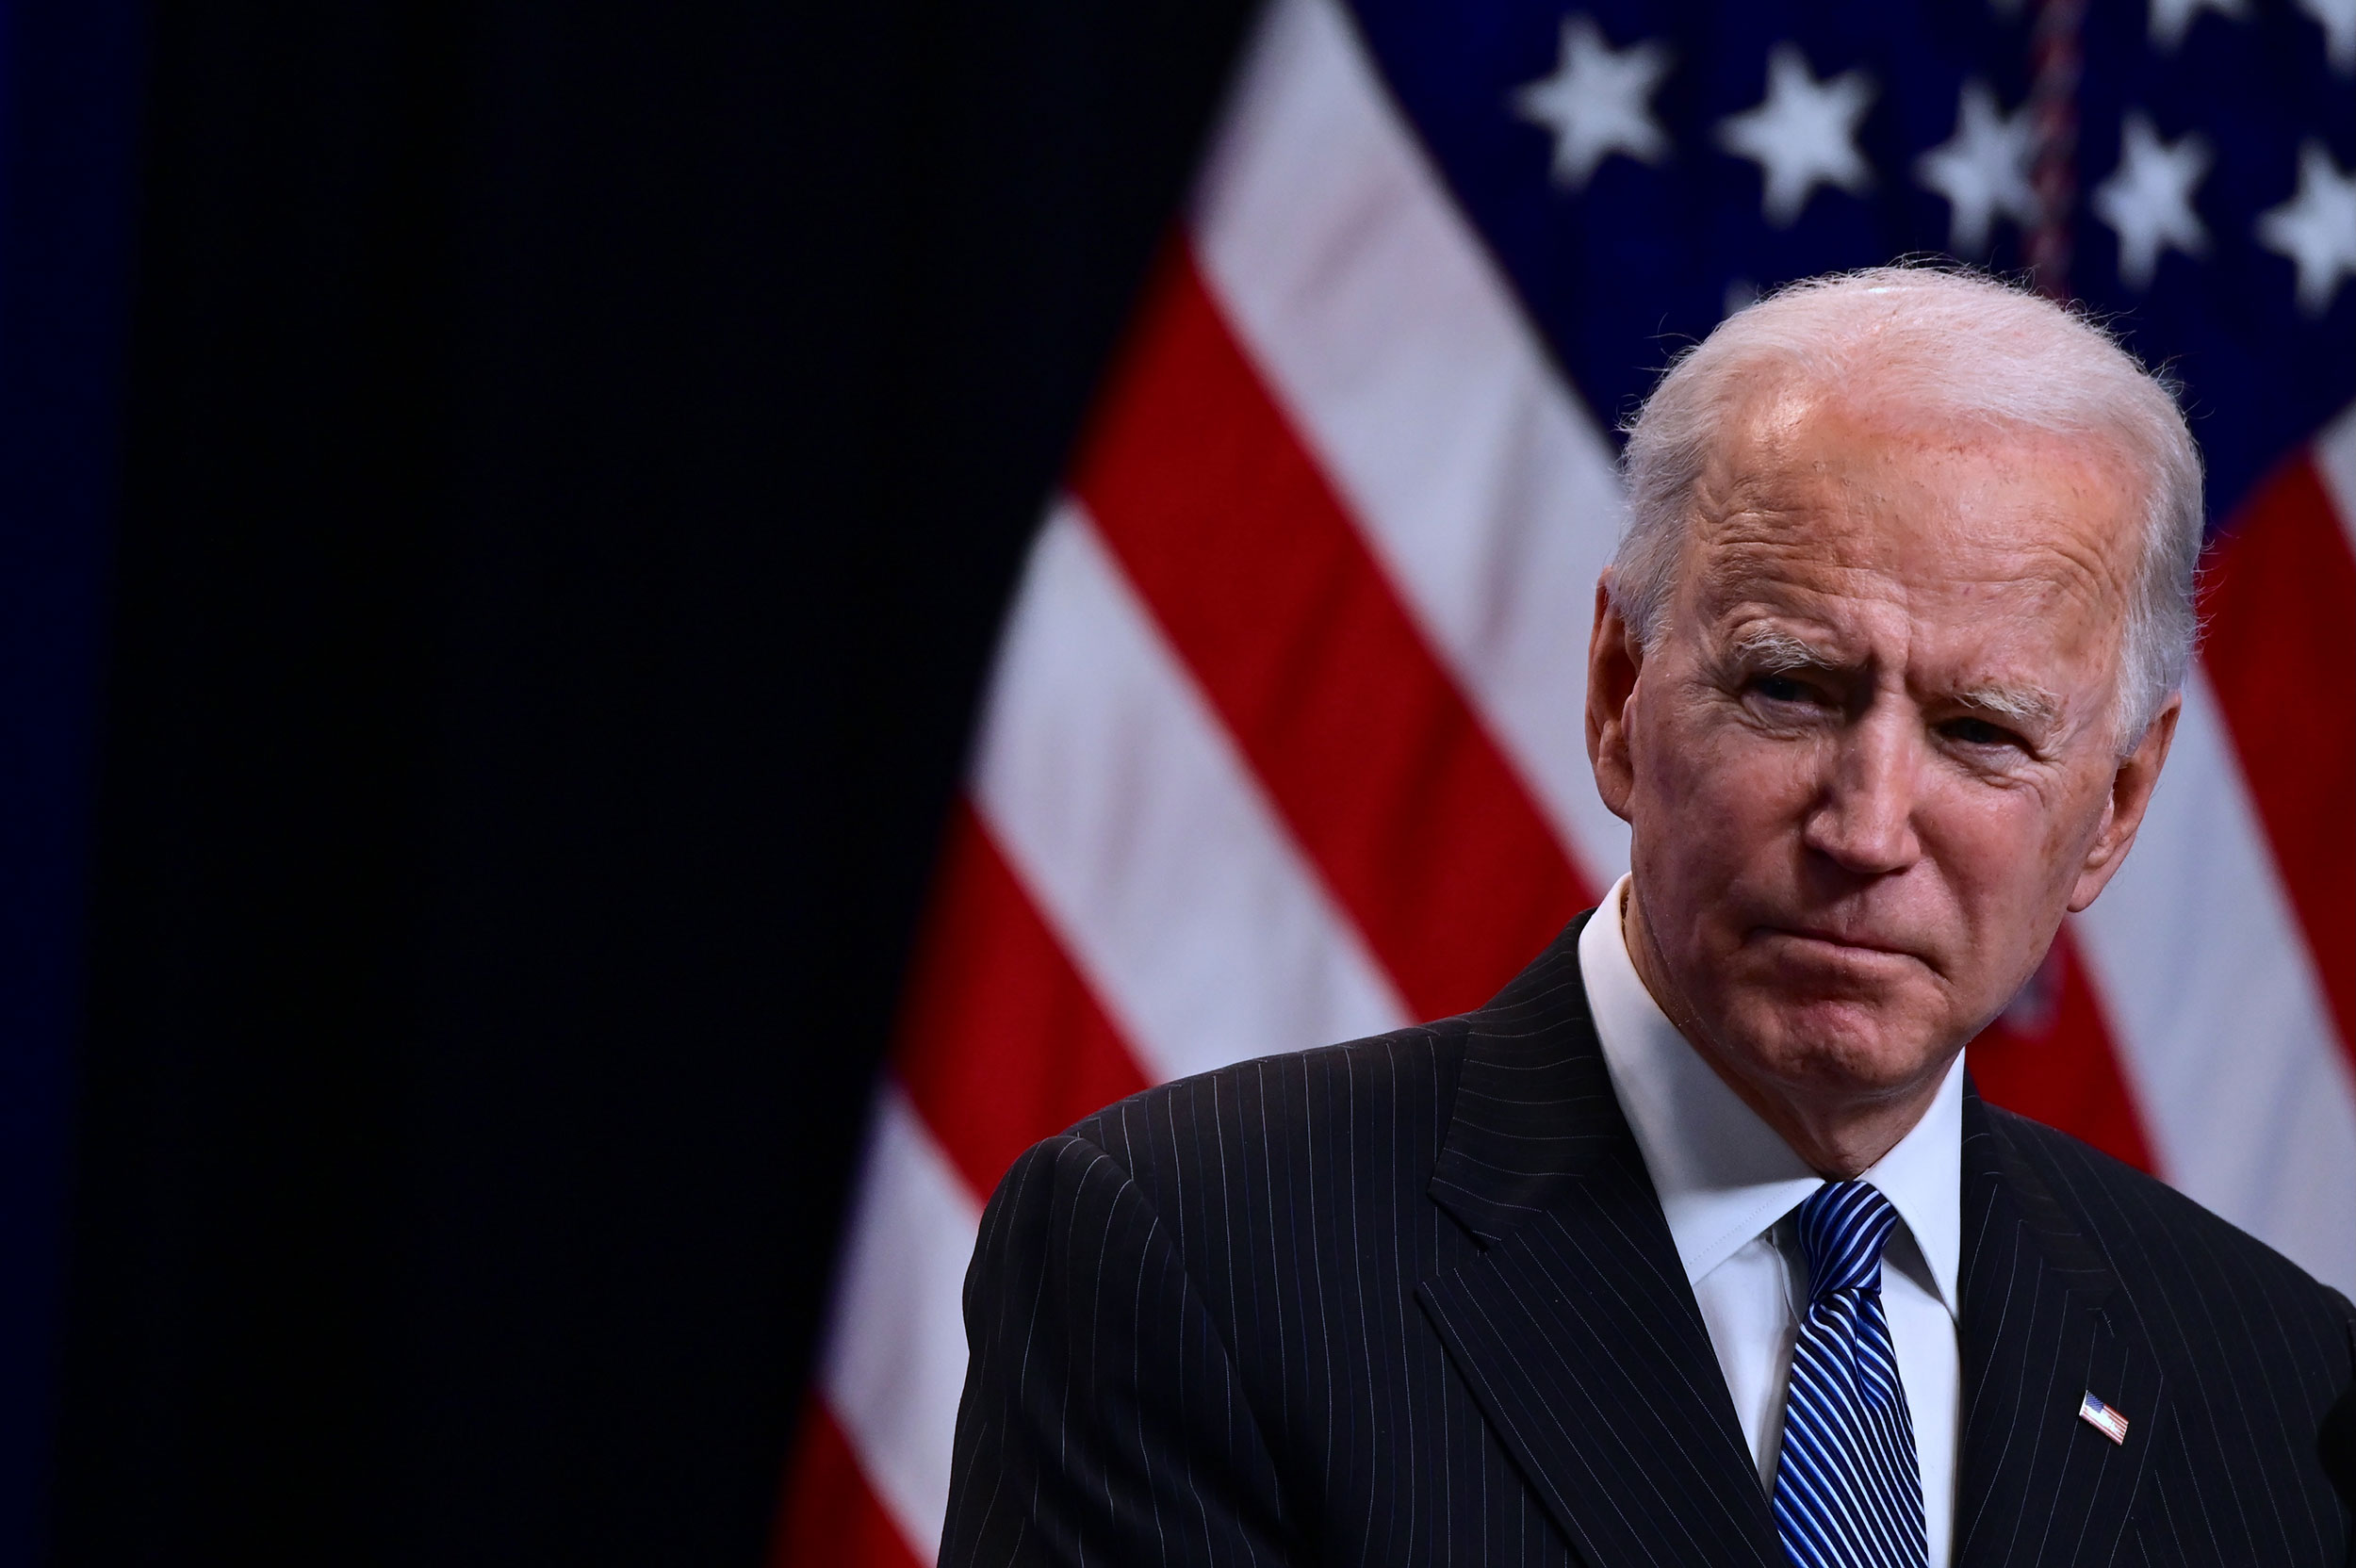 Biden continues push to put racial equity at the forefront